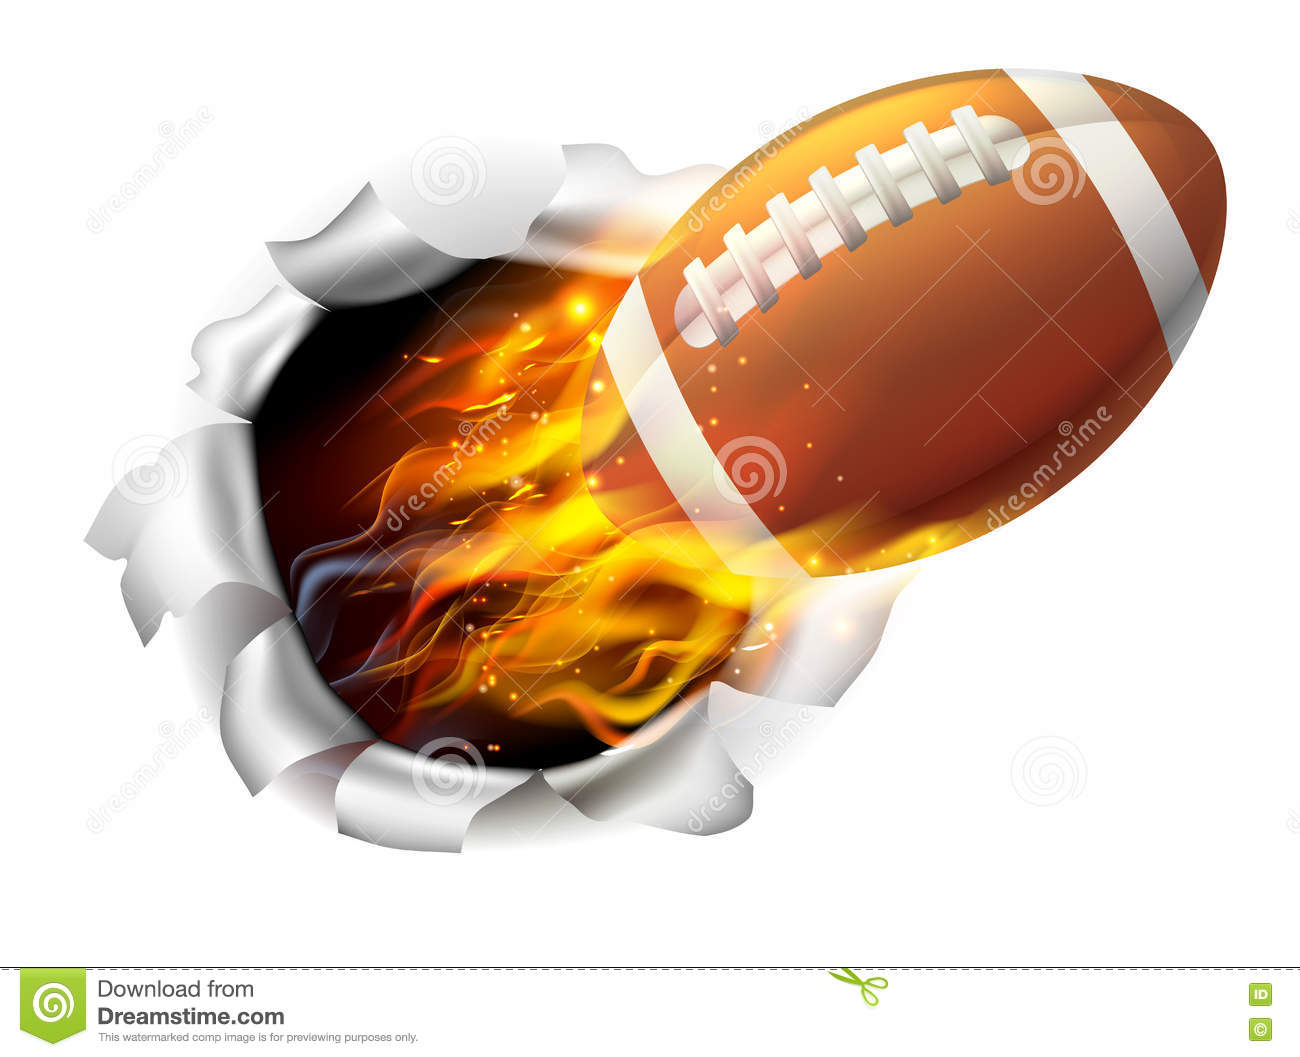 The Gallery For Flaming Football Background Images: Flaming American Football Ball Tearing A Hole In The